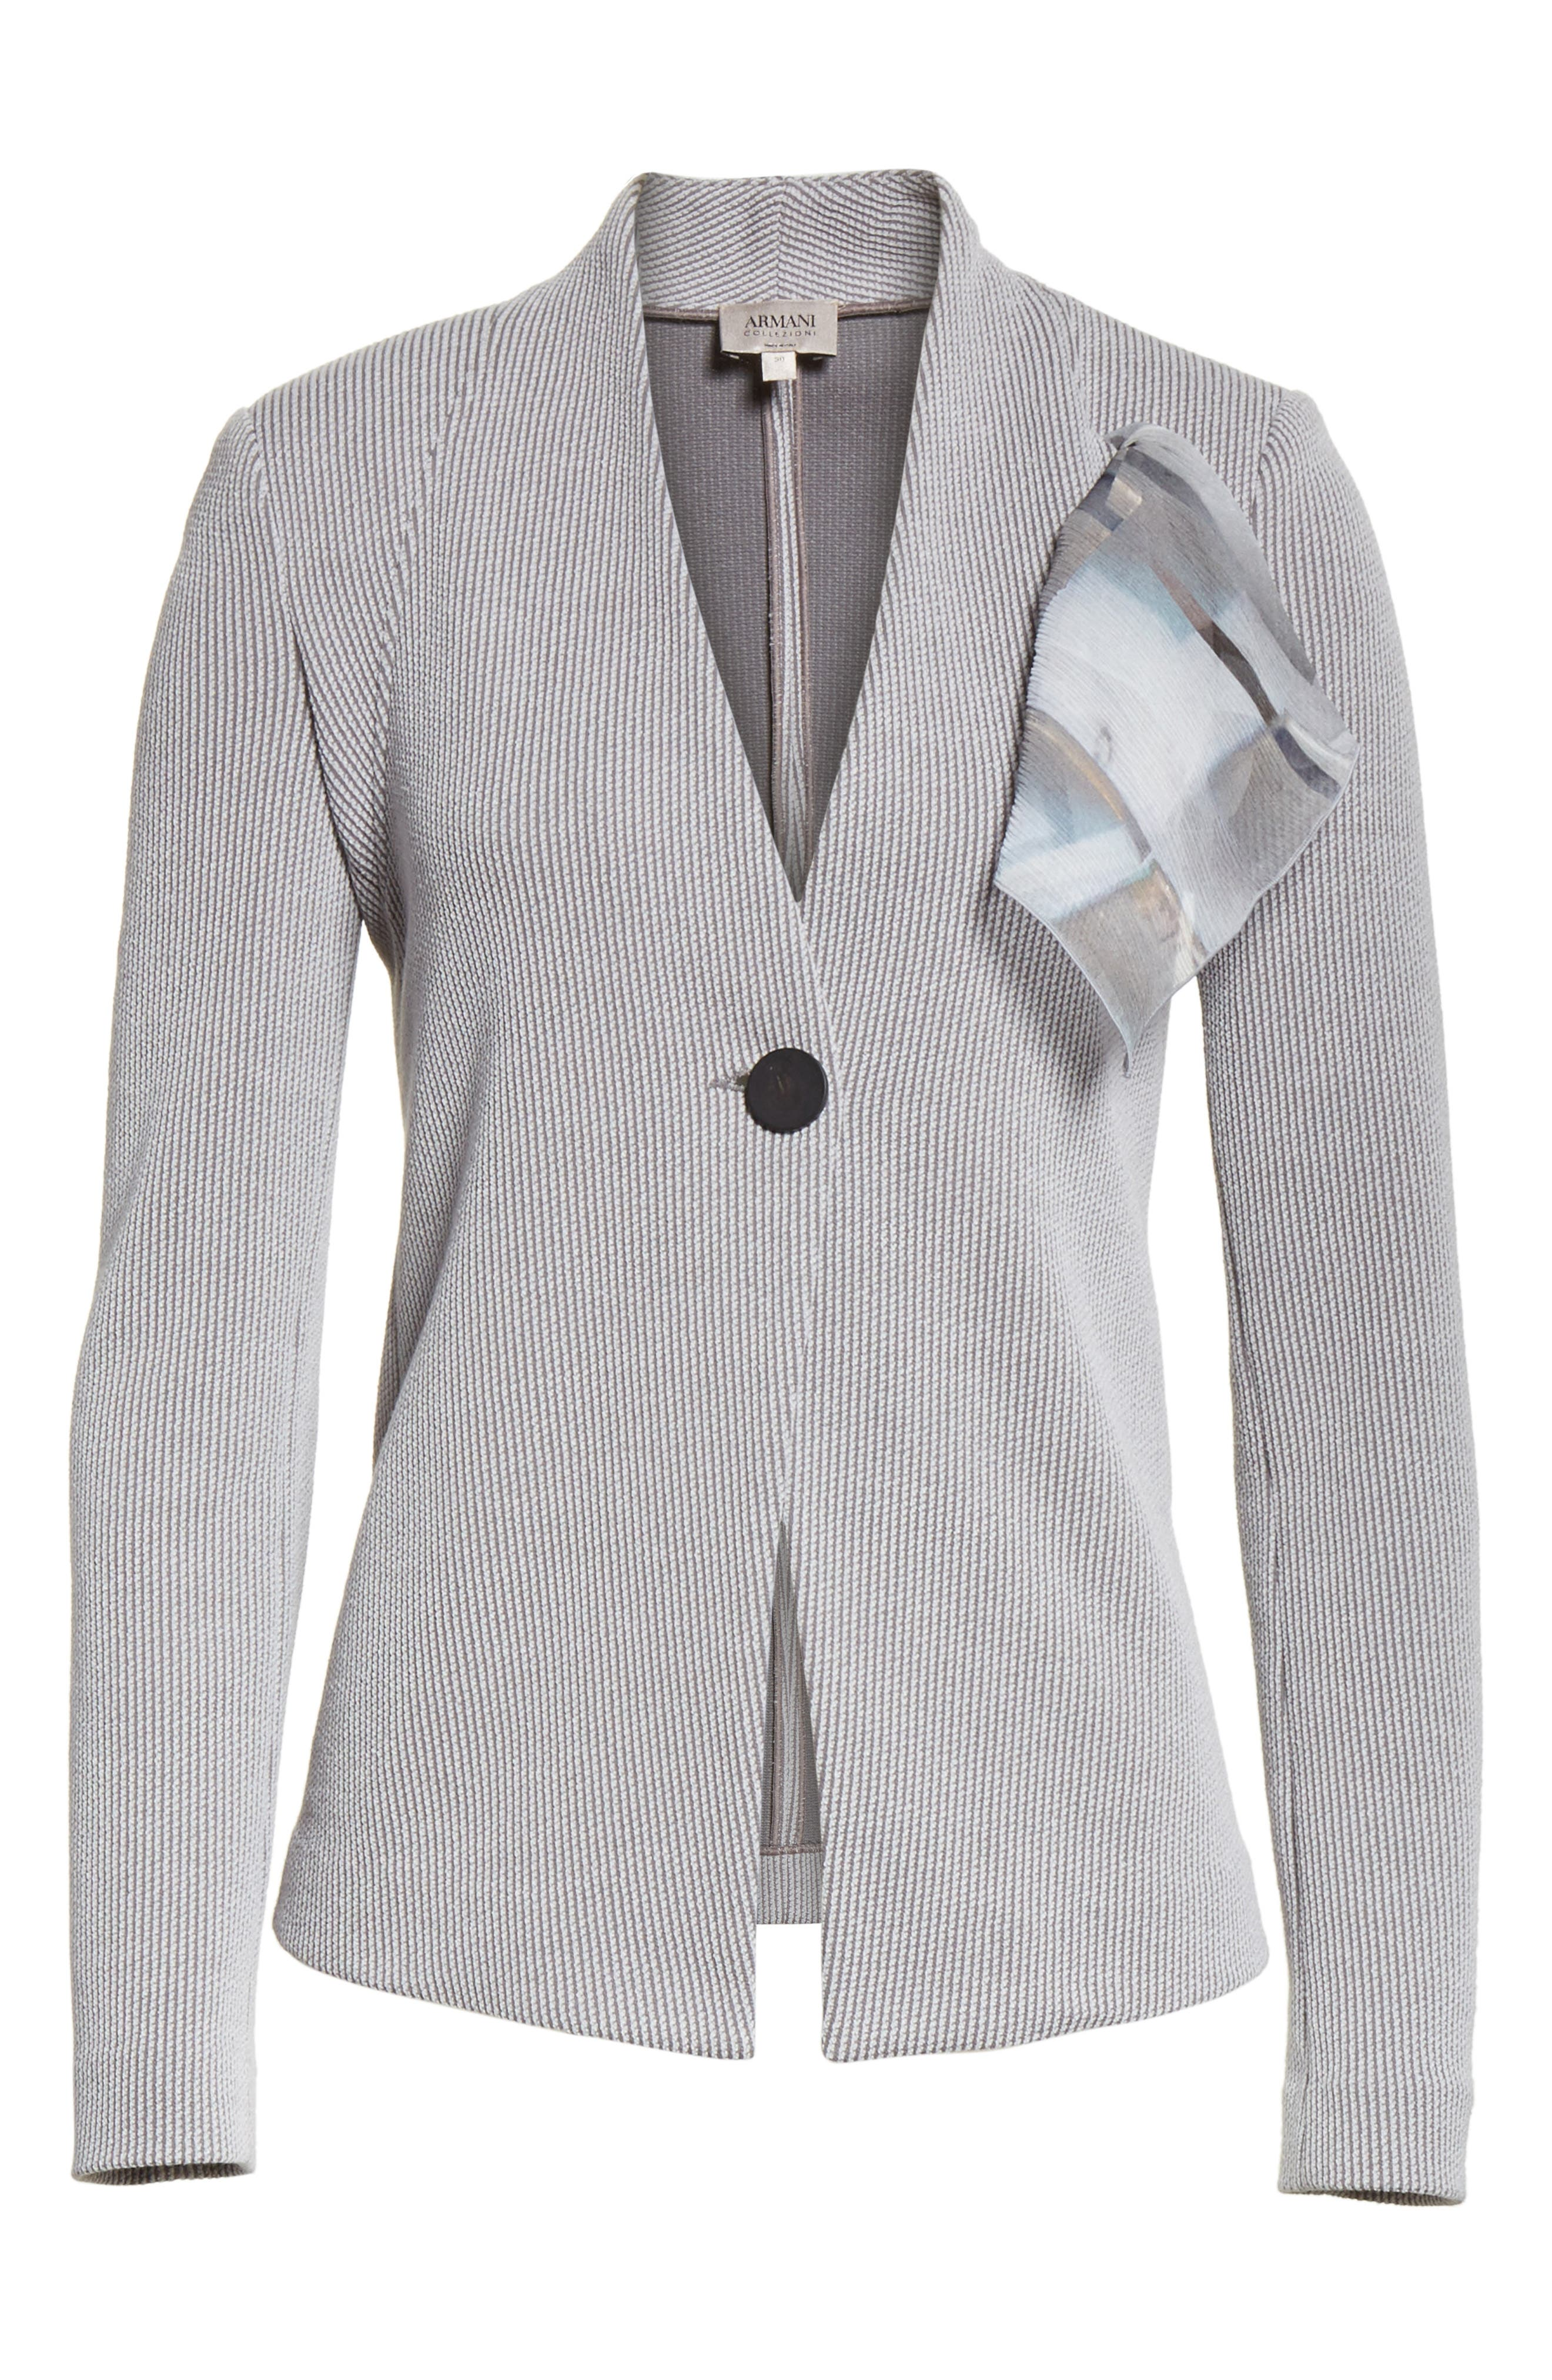 Stripe Jacquard Jacket,                             Alternate thumbnail 8, color,                             Grey Multi